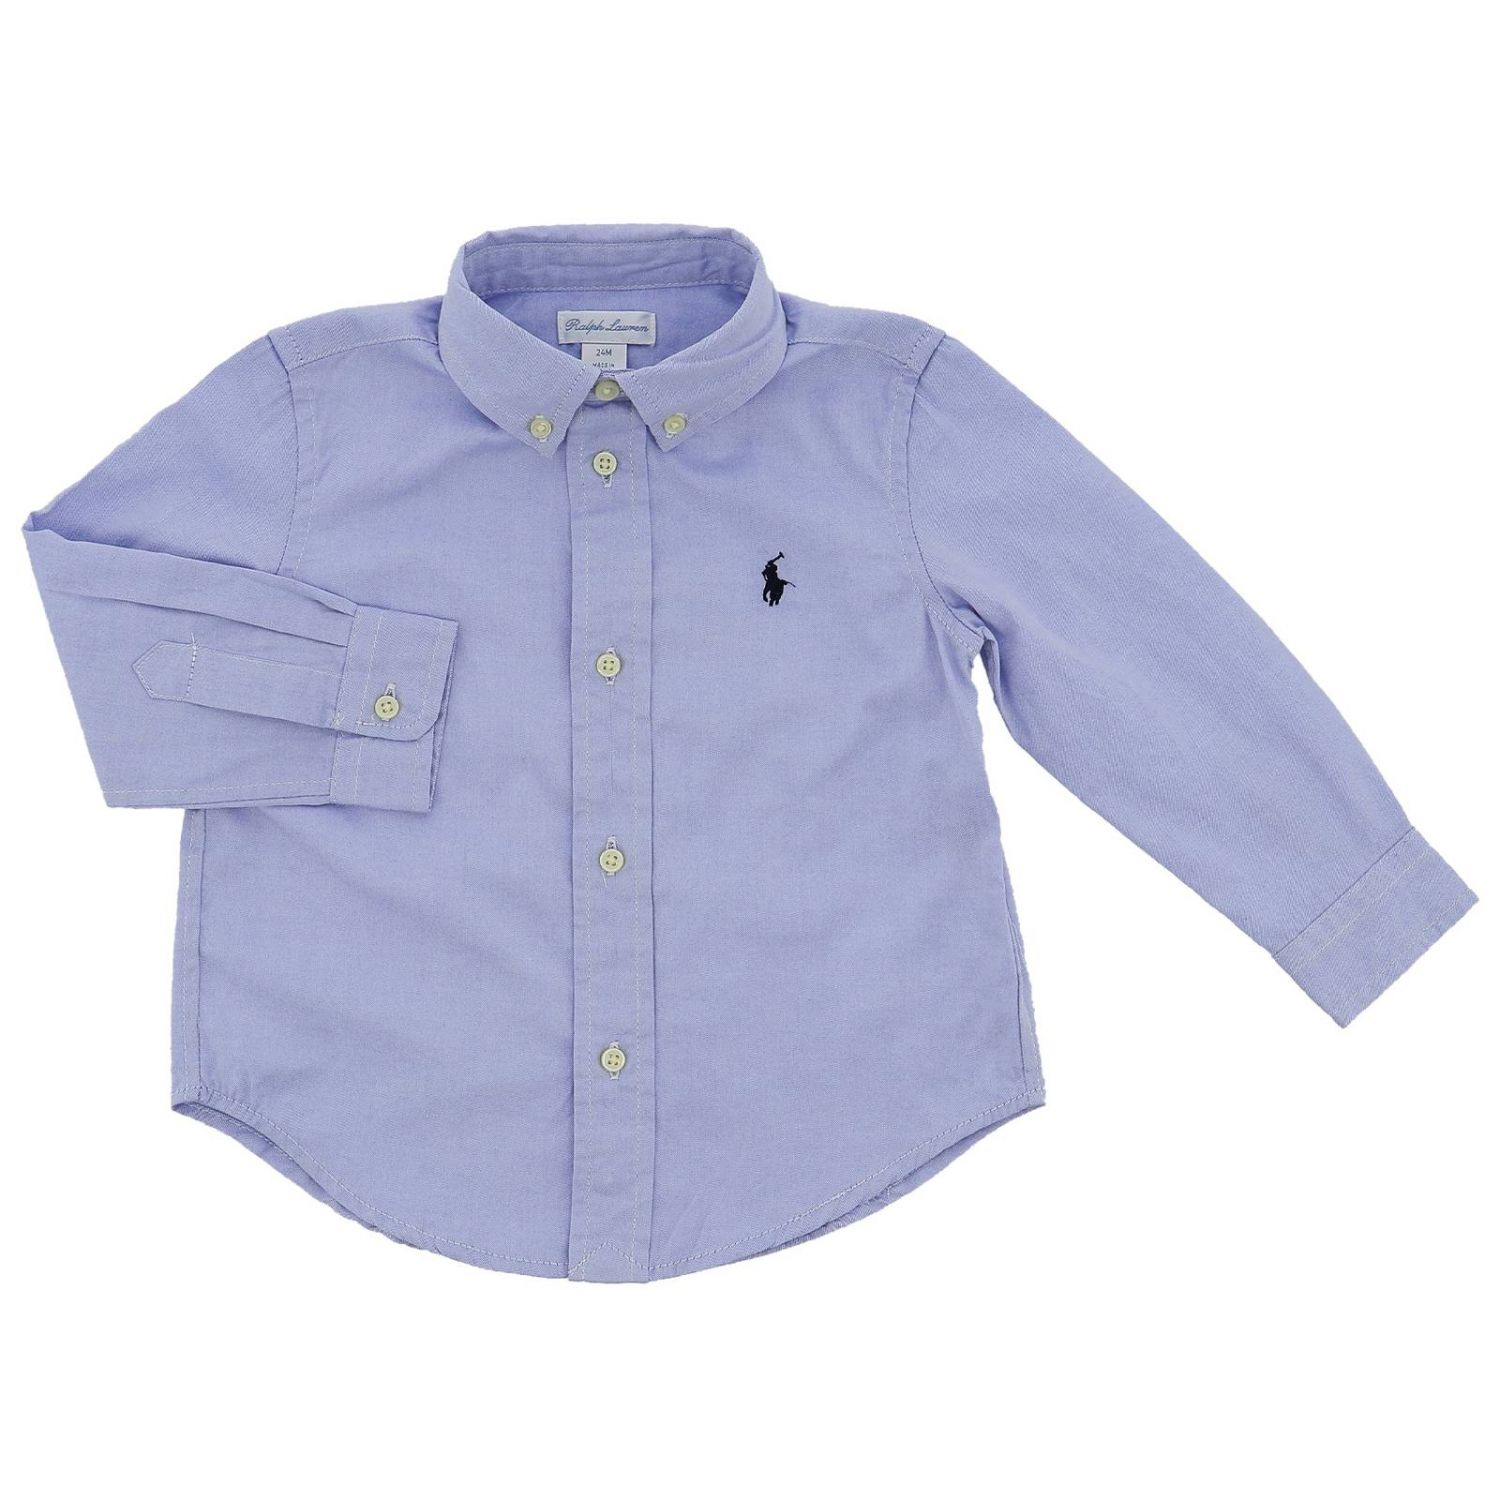 Shirt Shirt Kids Polo Ralph Lauren Kid